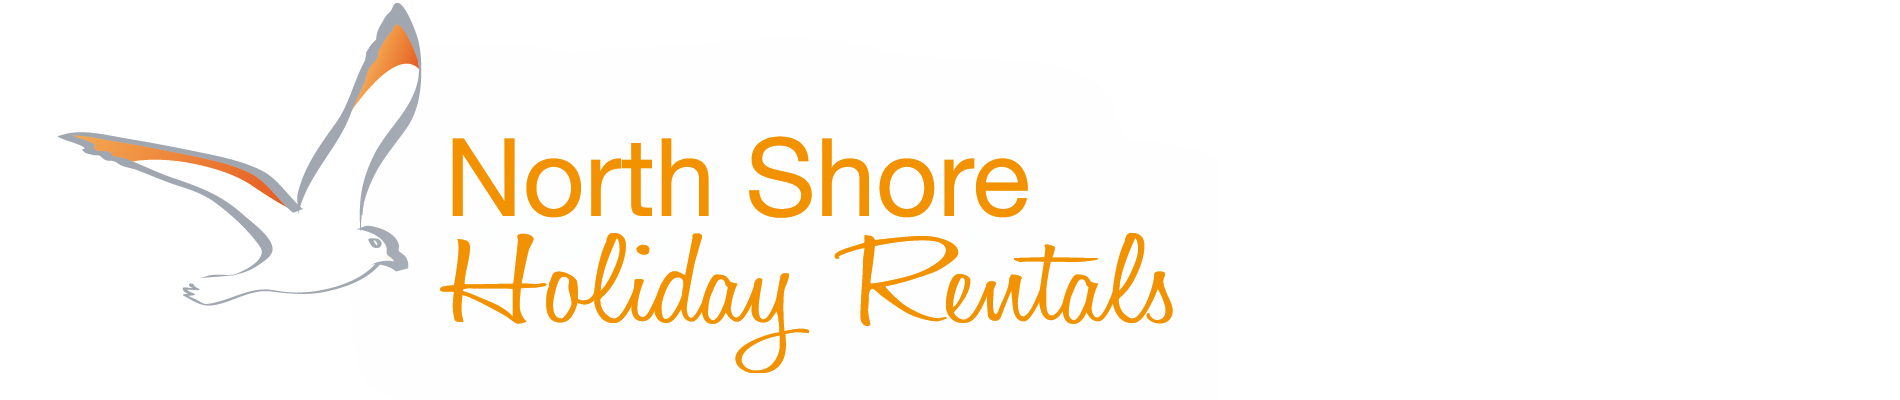 North Shore - Holiday Rentals